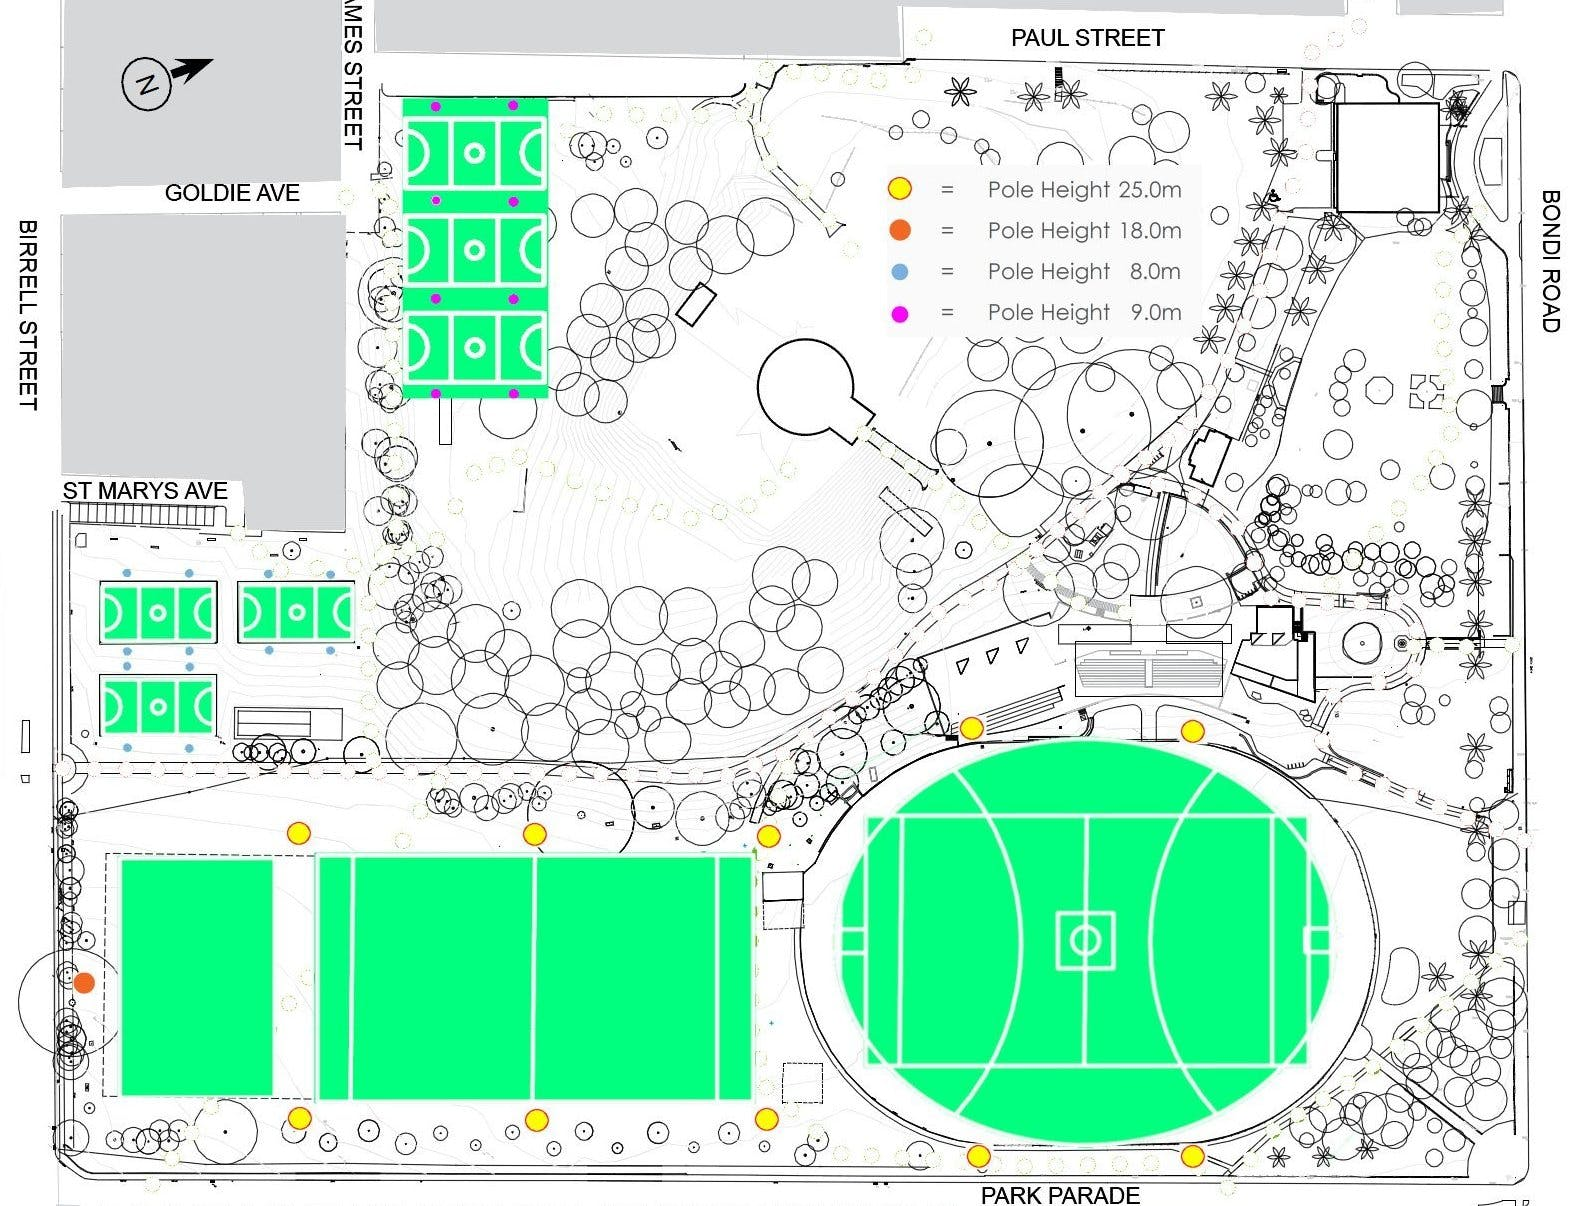 Proposed sports lighting plan for Waverley Park.